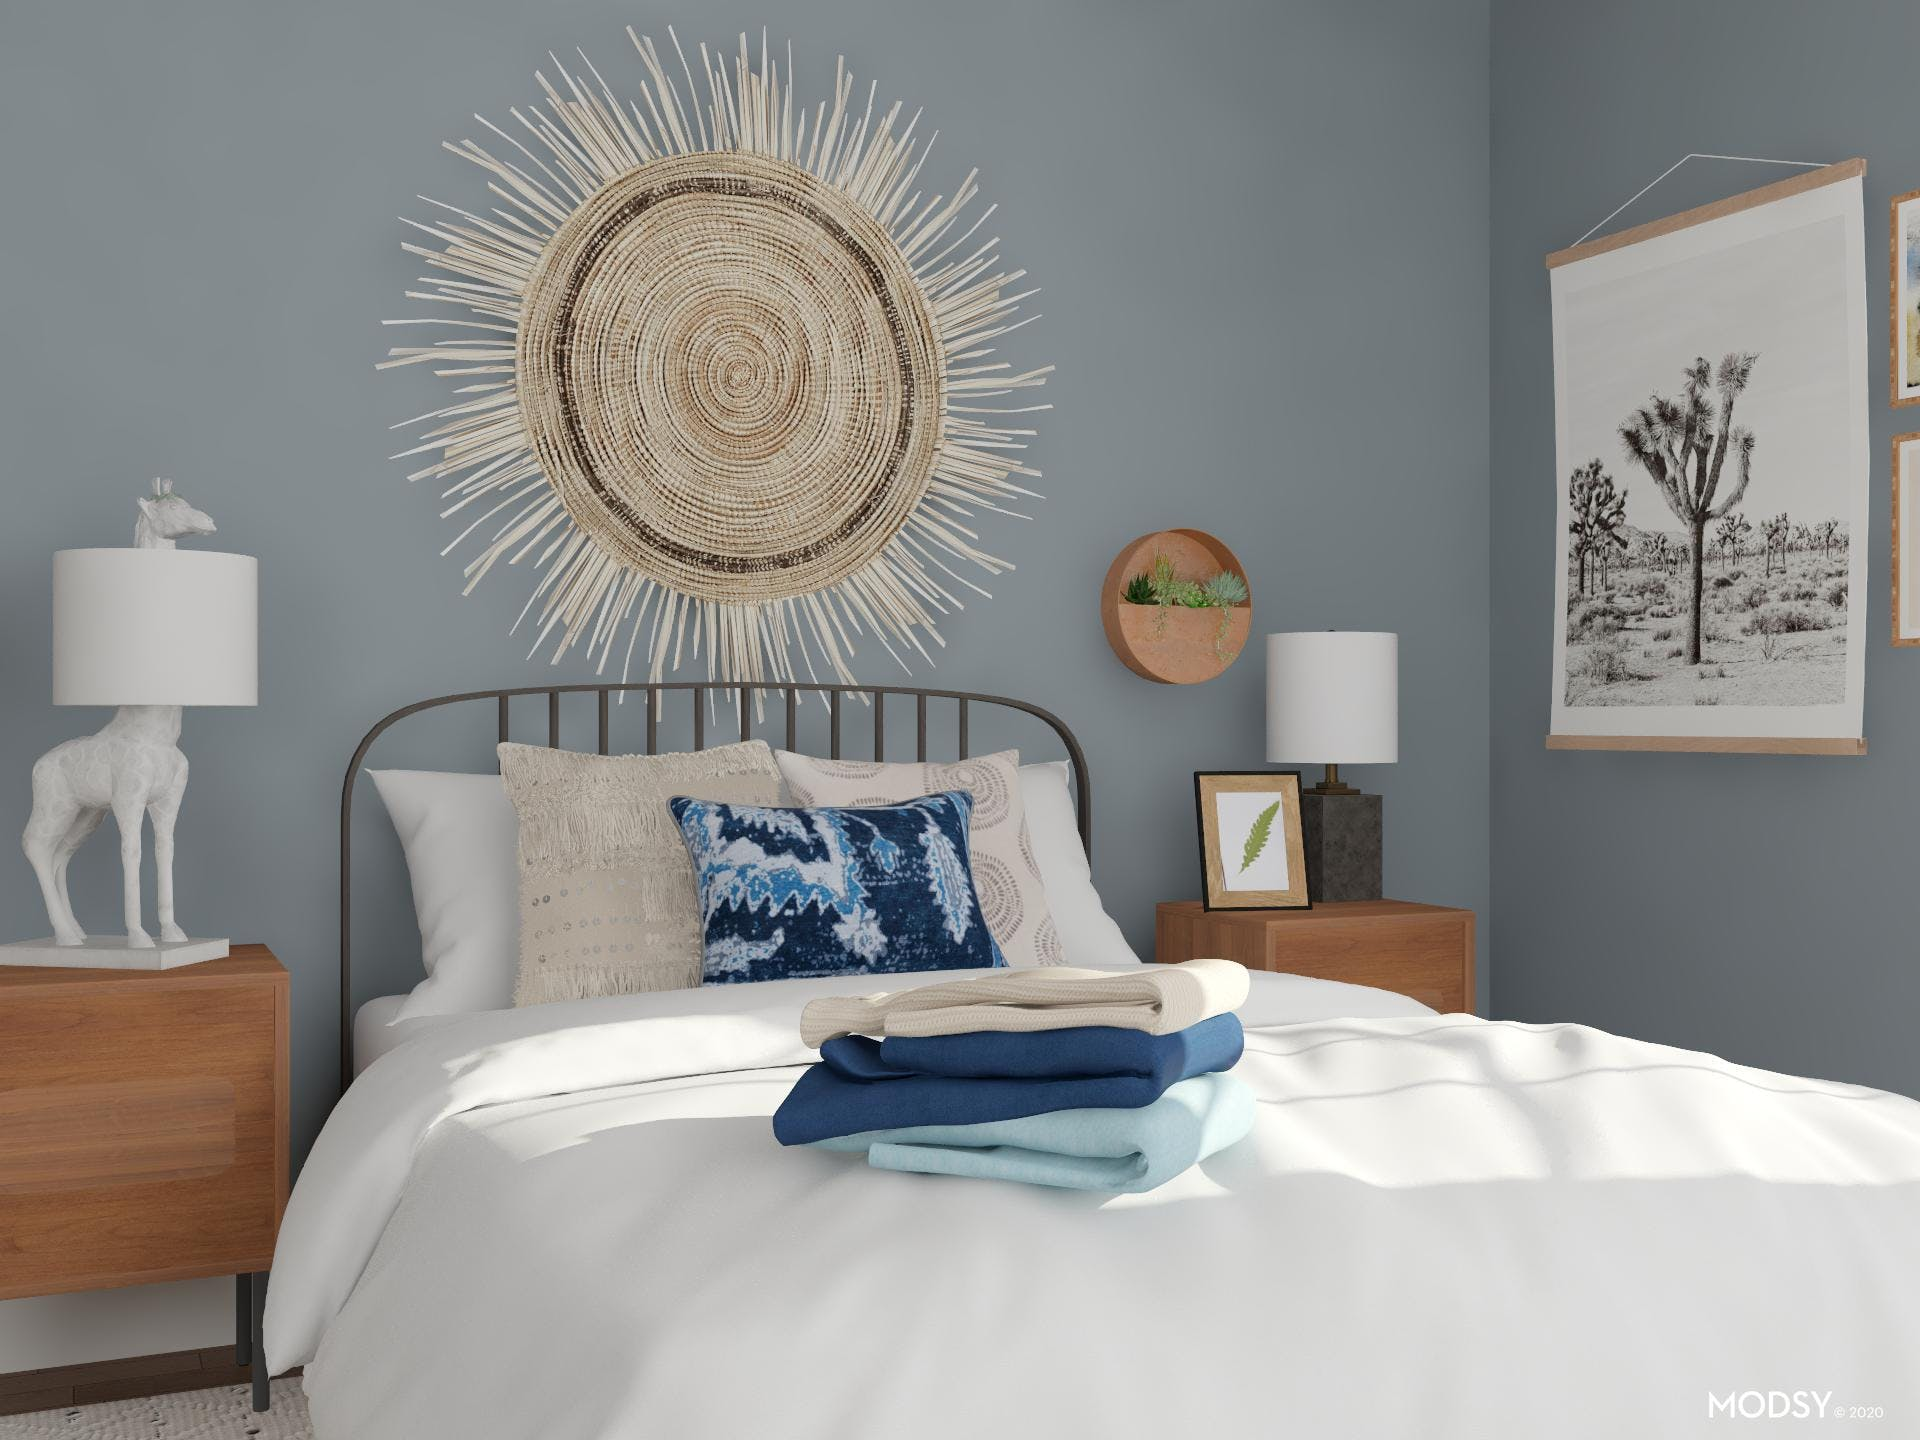 Creating a Focal Point in a Small Bedroom